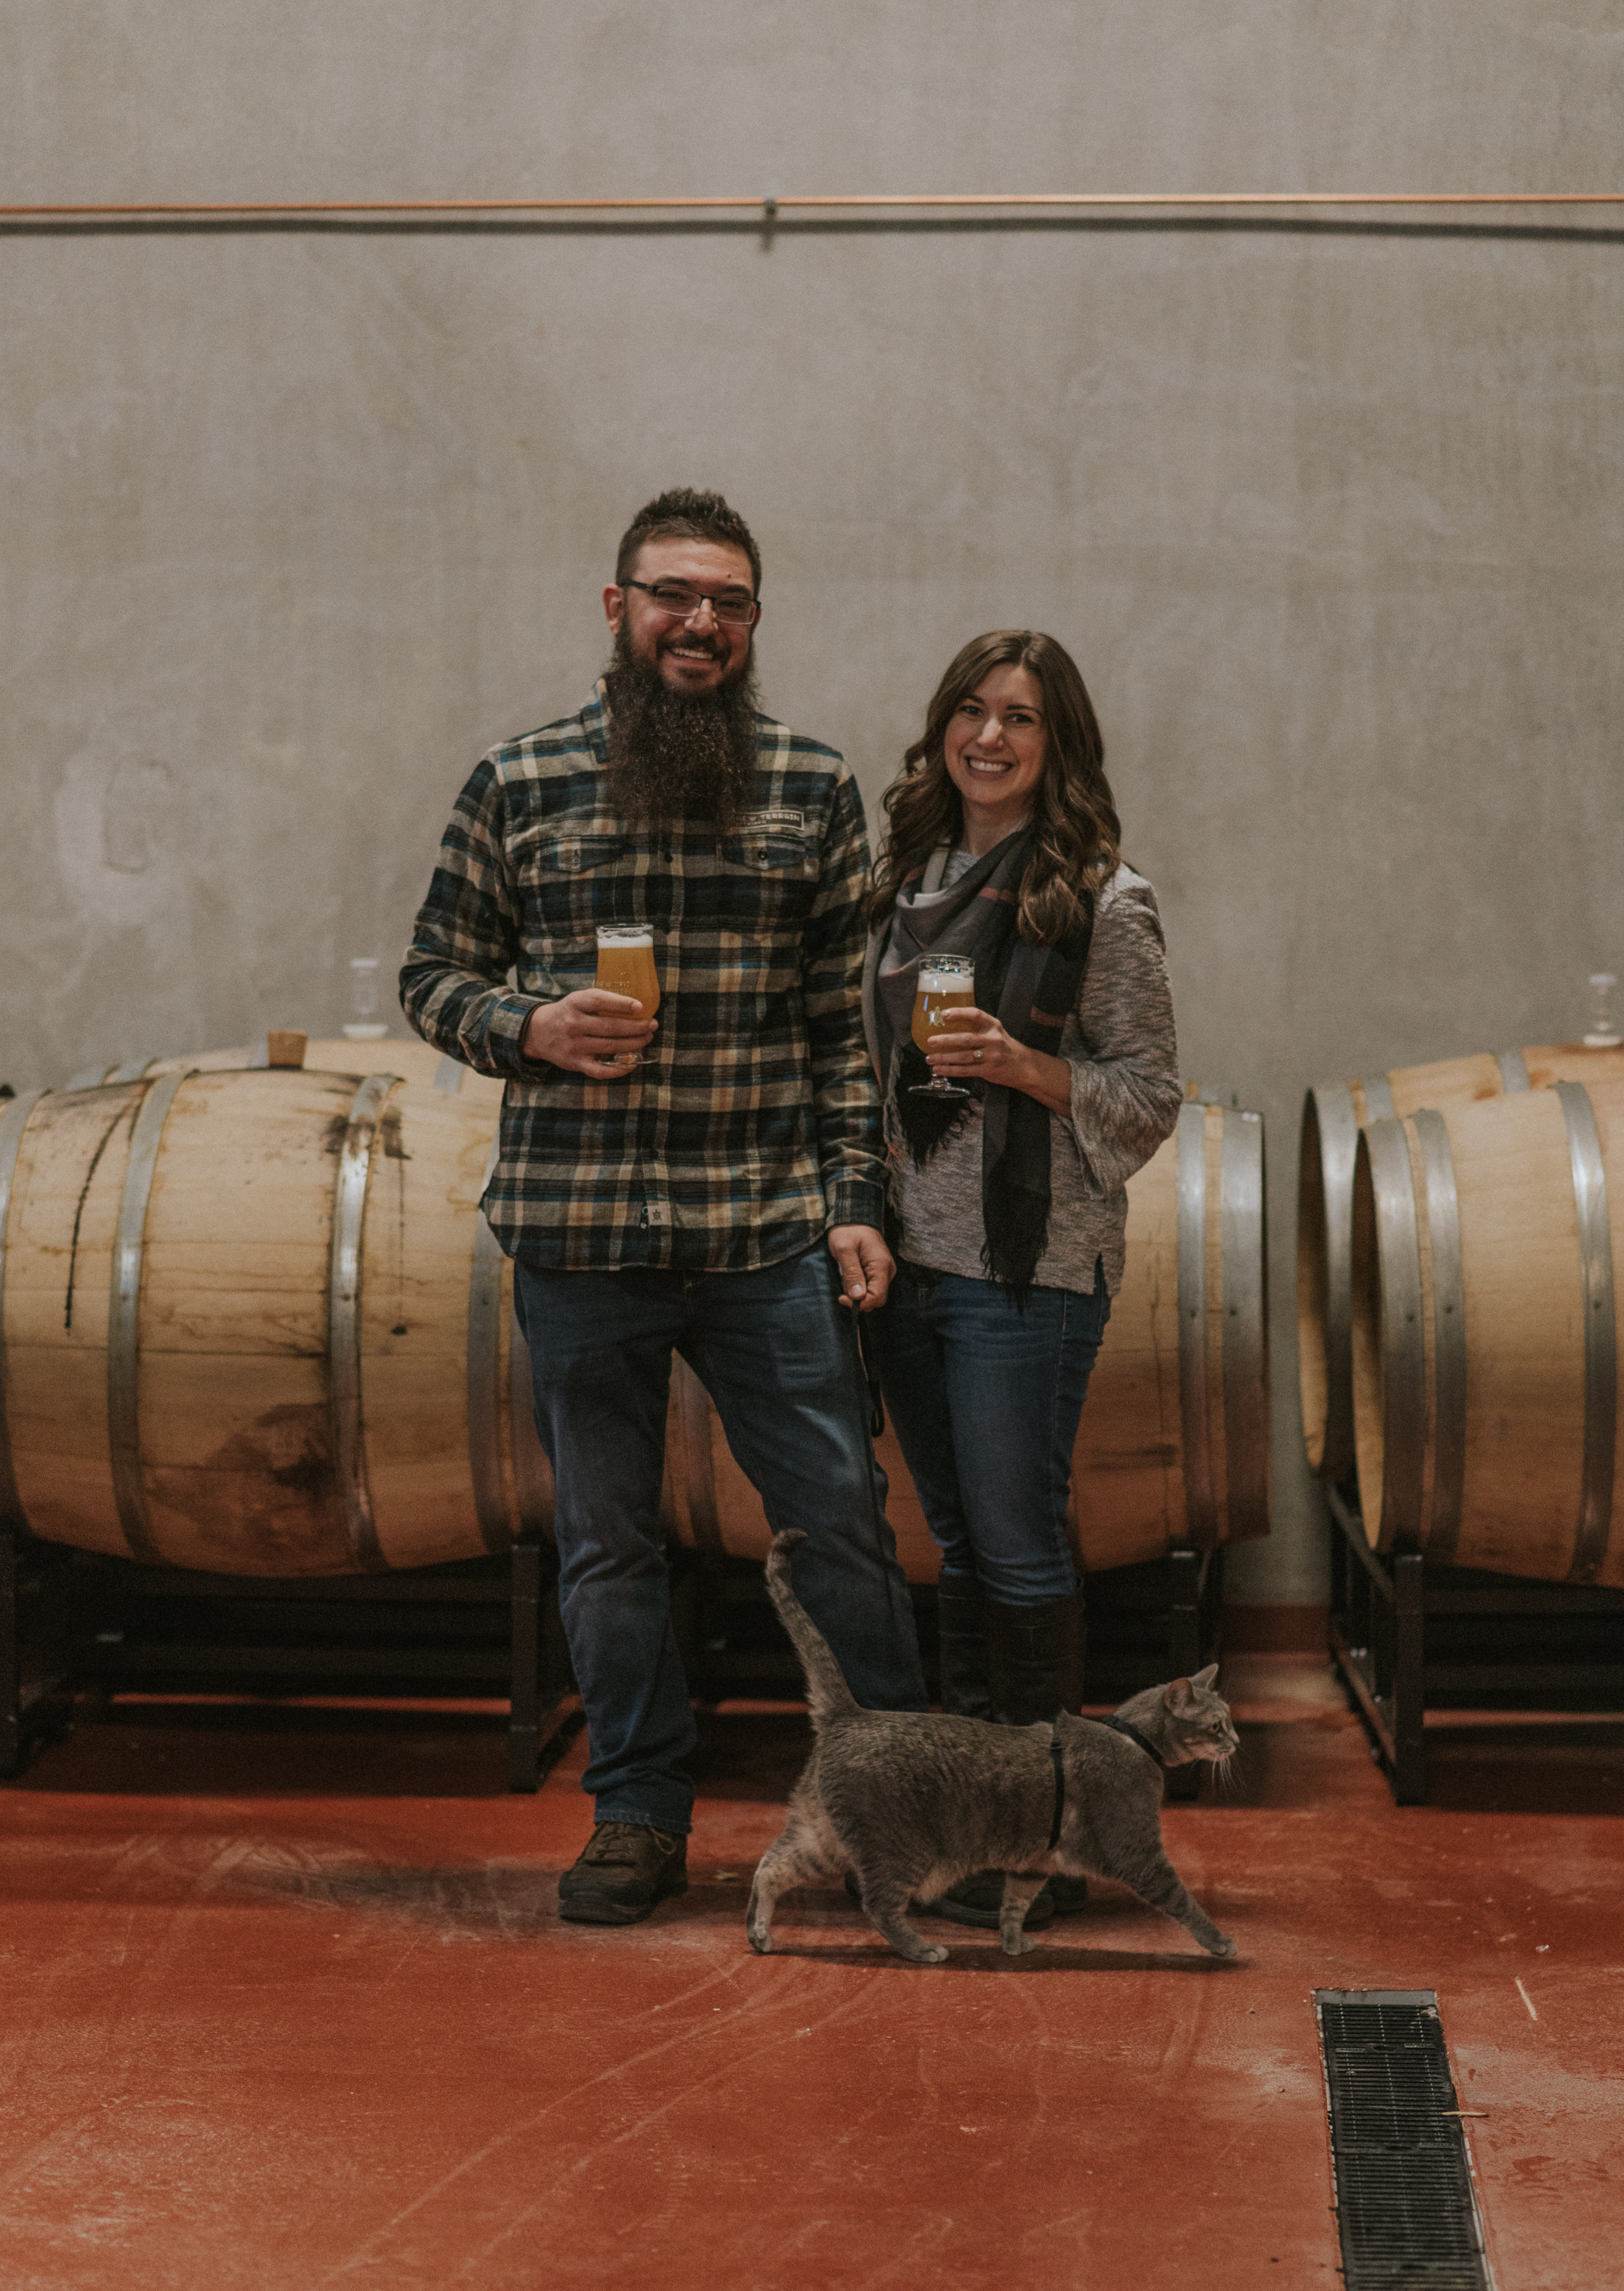 Colorado elopement and wedding photographer. Engagement and wedding at New Terrain Brewery in Golden, Colorado.